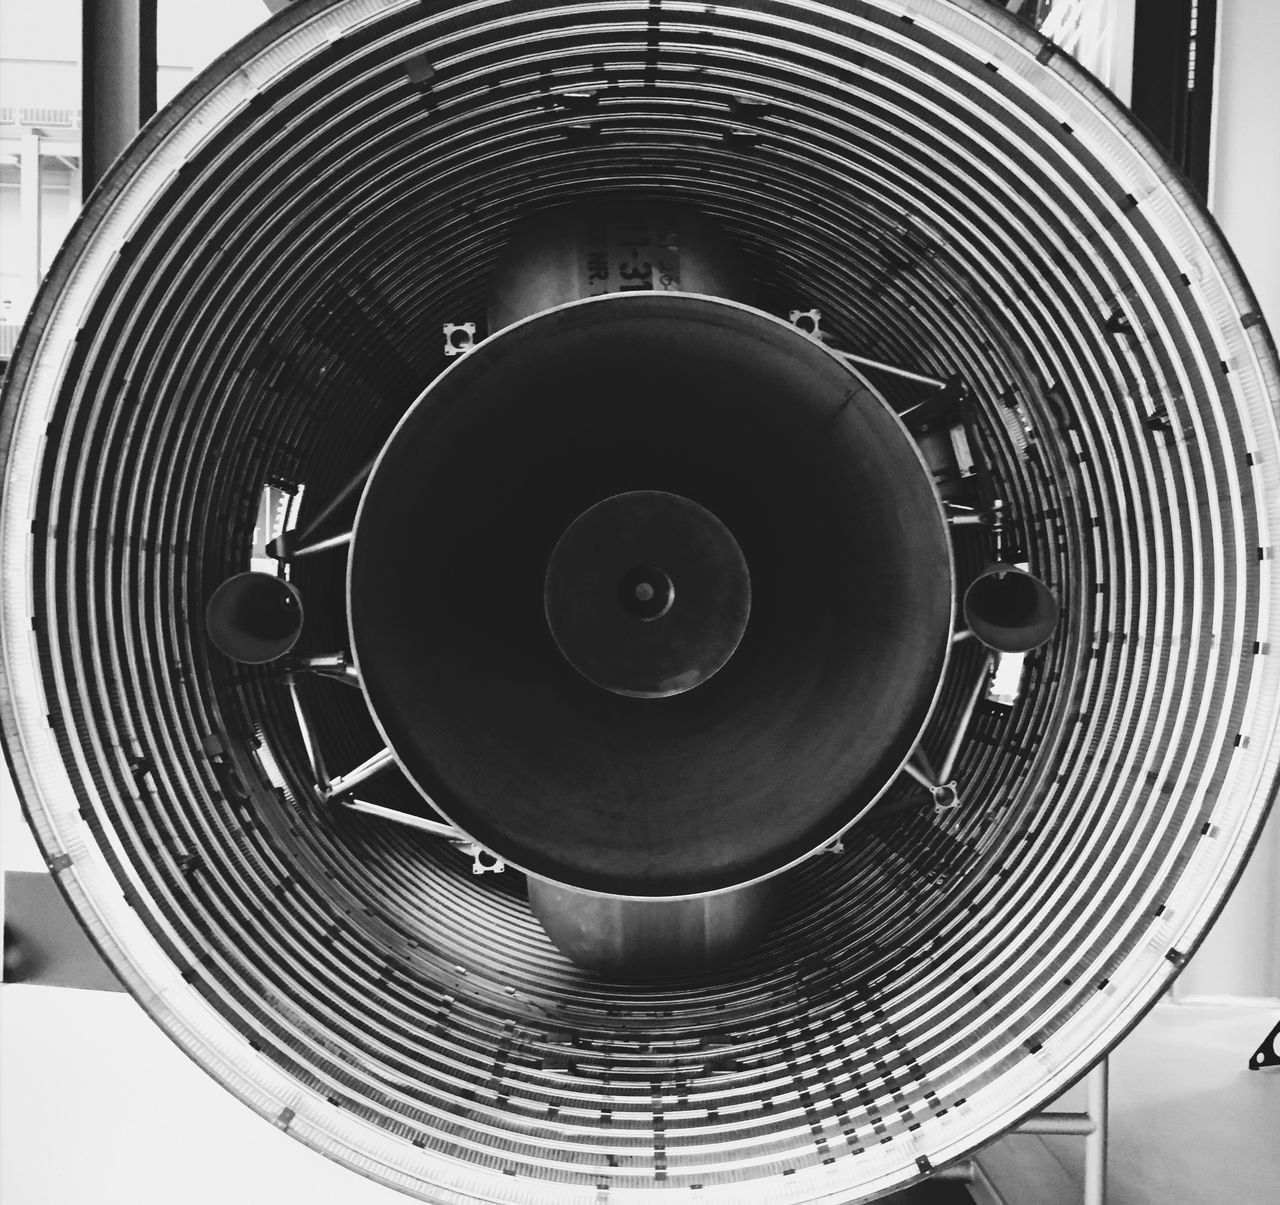 metal, indoors, circle, close-up, geometric shape, shape, technology, pattern, no people, equipment, music, fan, appliance, audio equipment, steel, full frame, directly above, design, arts culture and entertainment, household equipment, alloy, silver colored